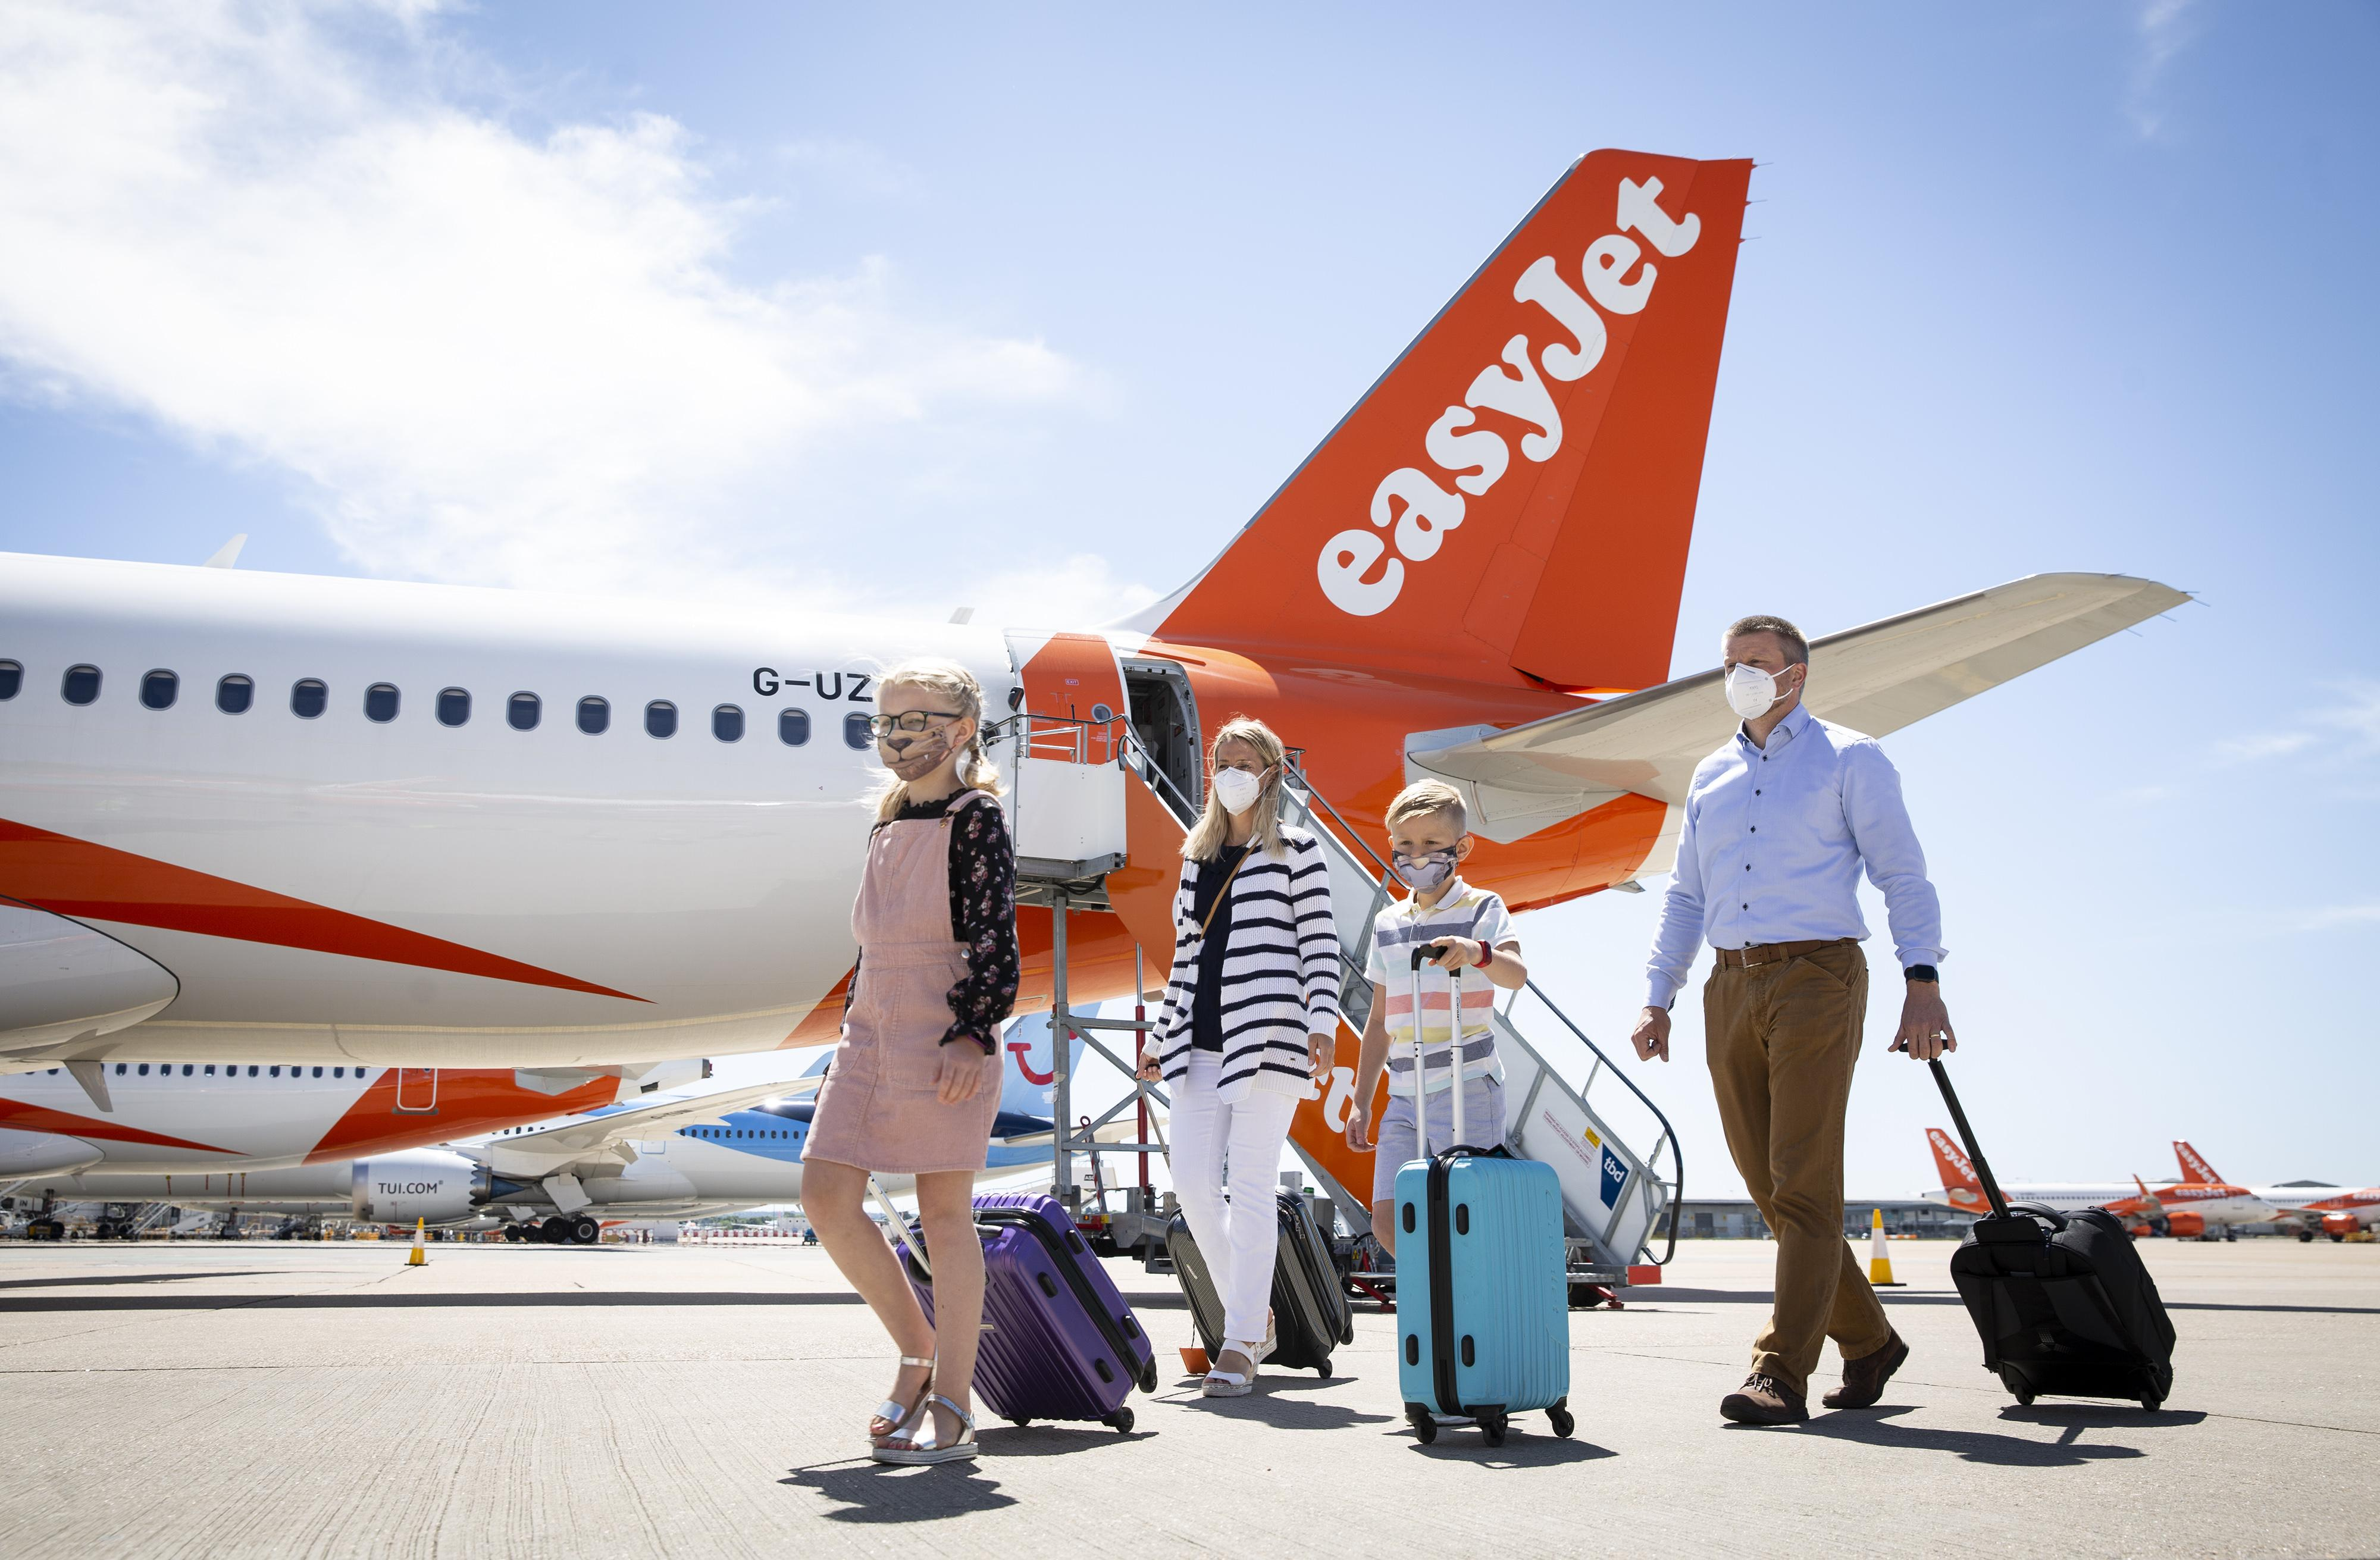 Easyjet passengers with masks